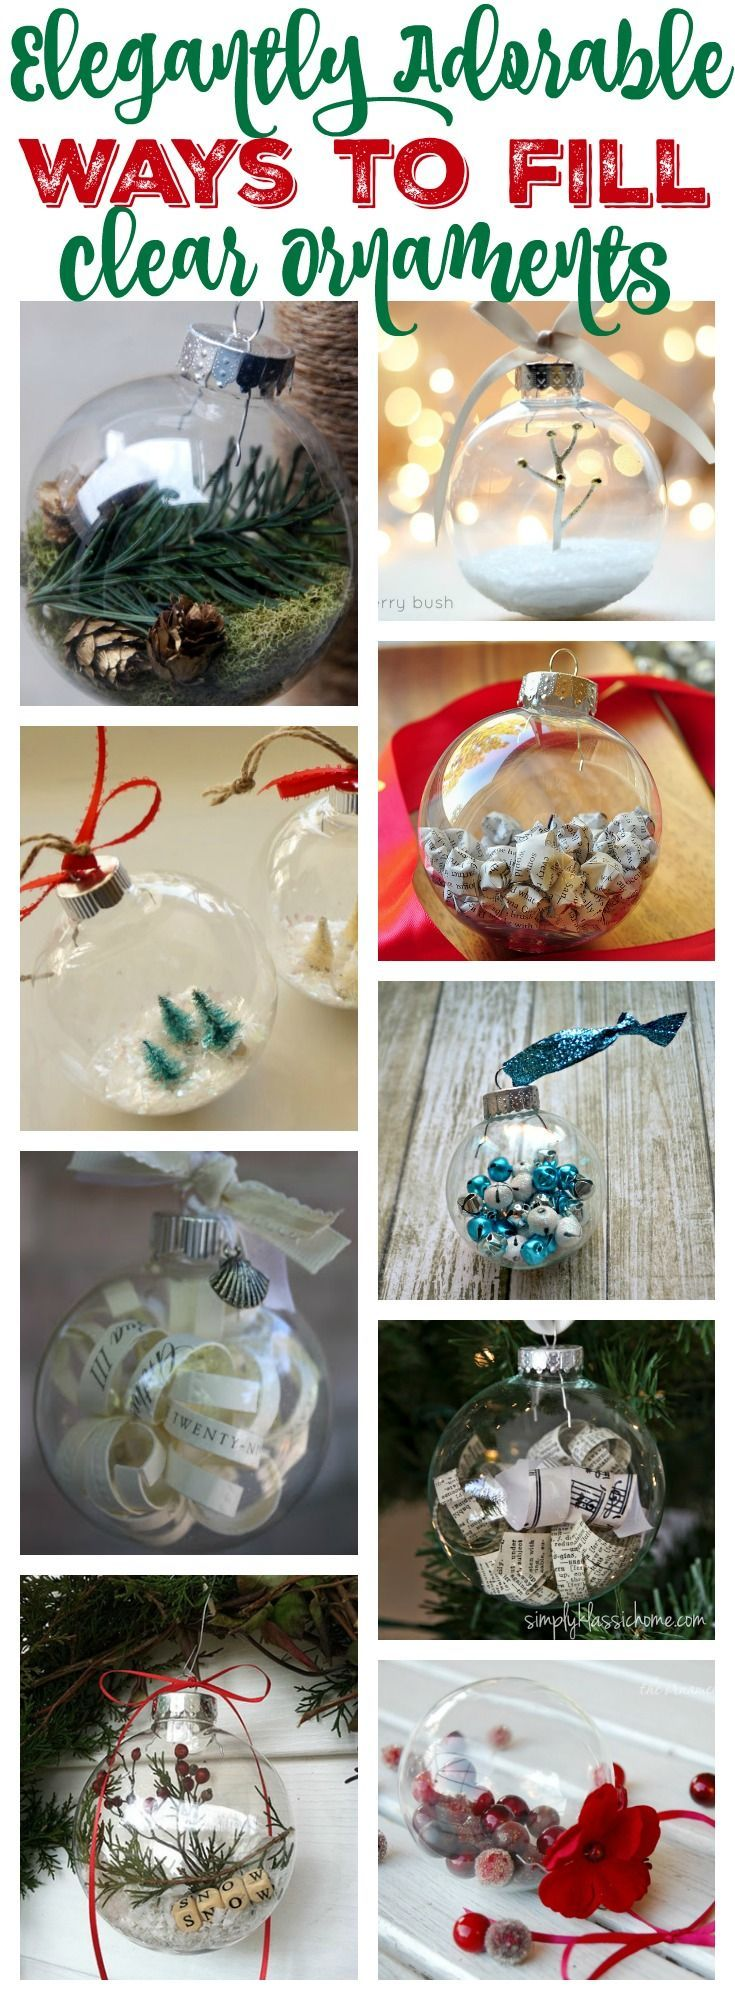 Clear christmas bulbs for crafting - 20 Elegantly Adorable Ways To Fill Clear Ornaments